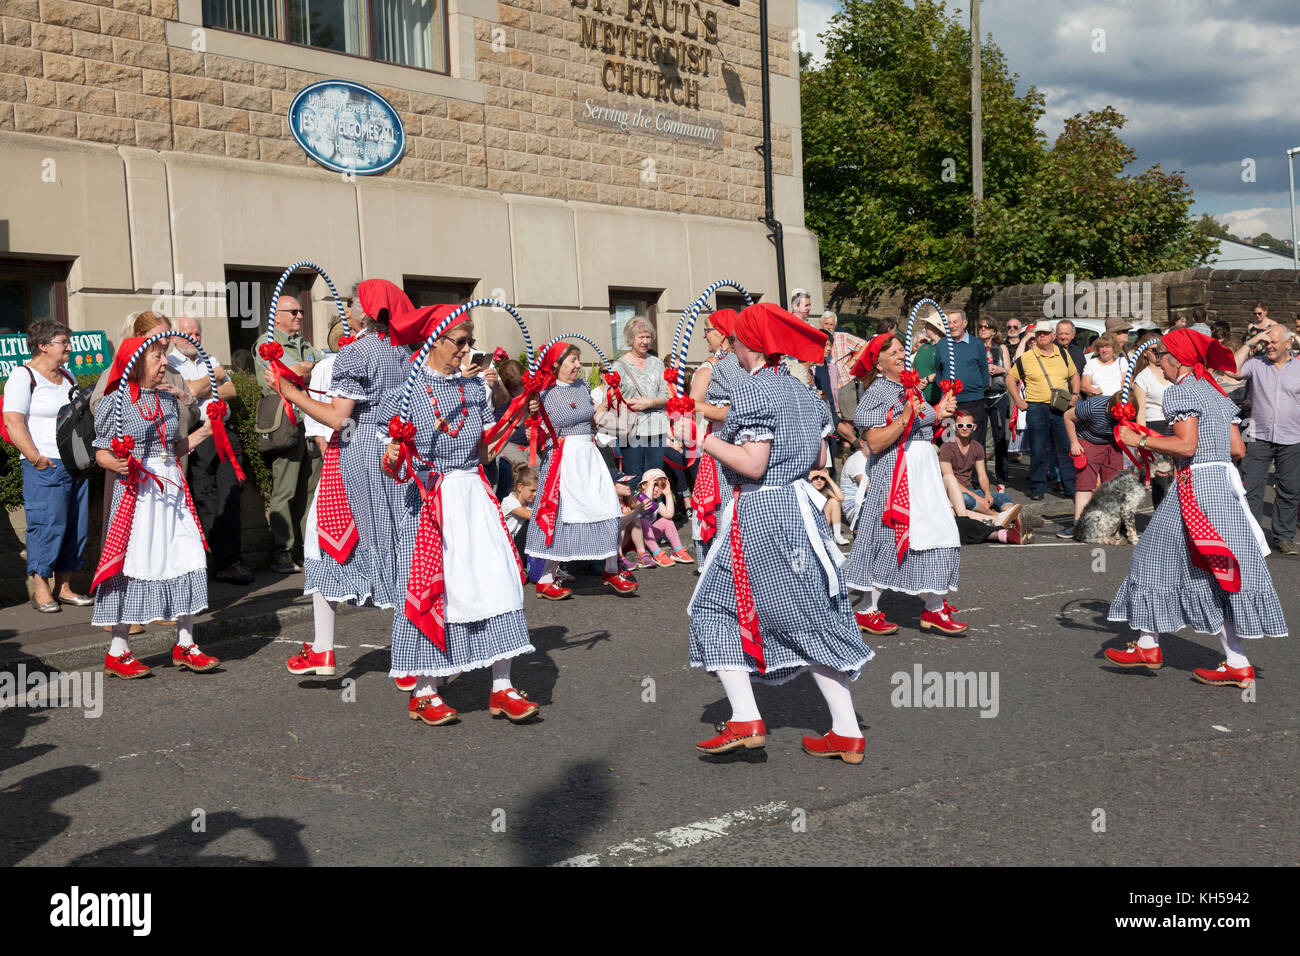 The Poynton Jemmers morris dancers at Sowerby Bridge during the 2017 Rushbearing Festival - Stock Image